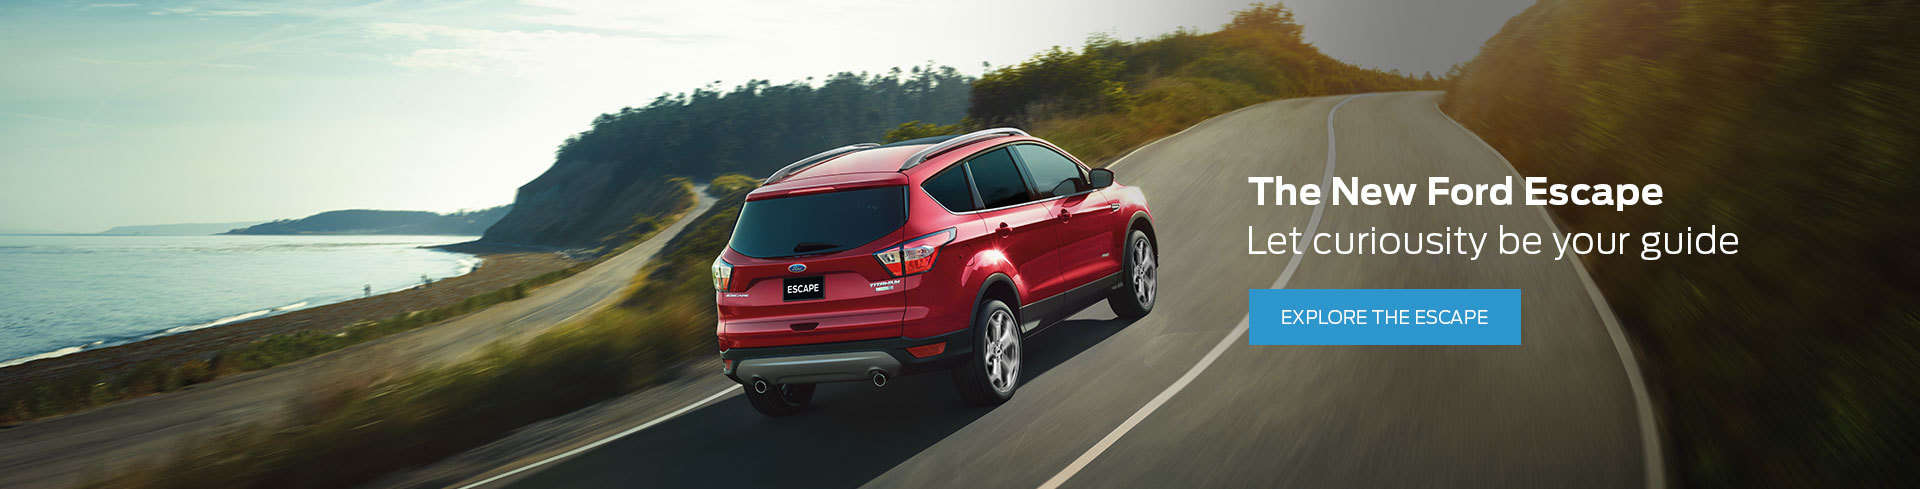 The New Ford Escape. Let curiousity be your guide.